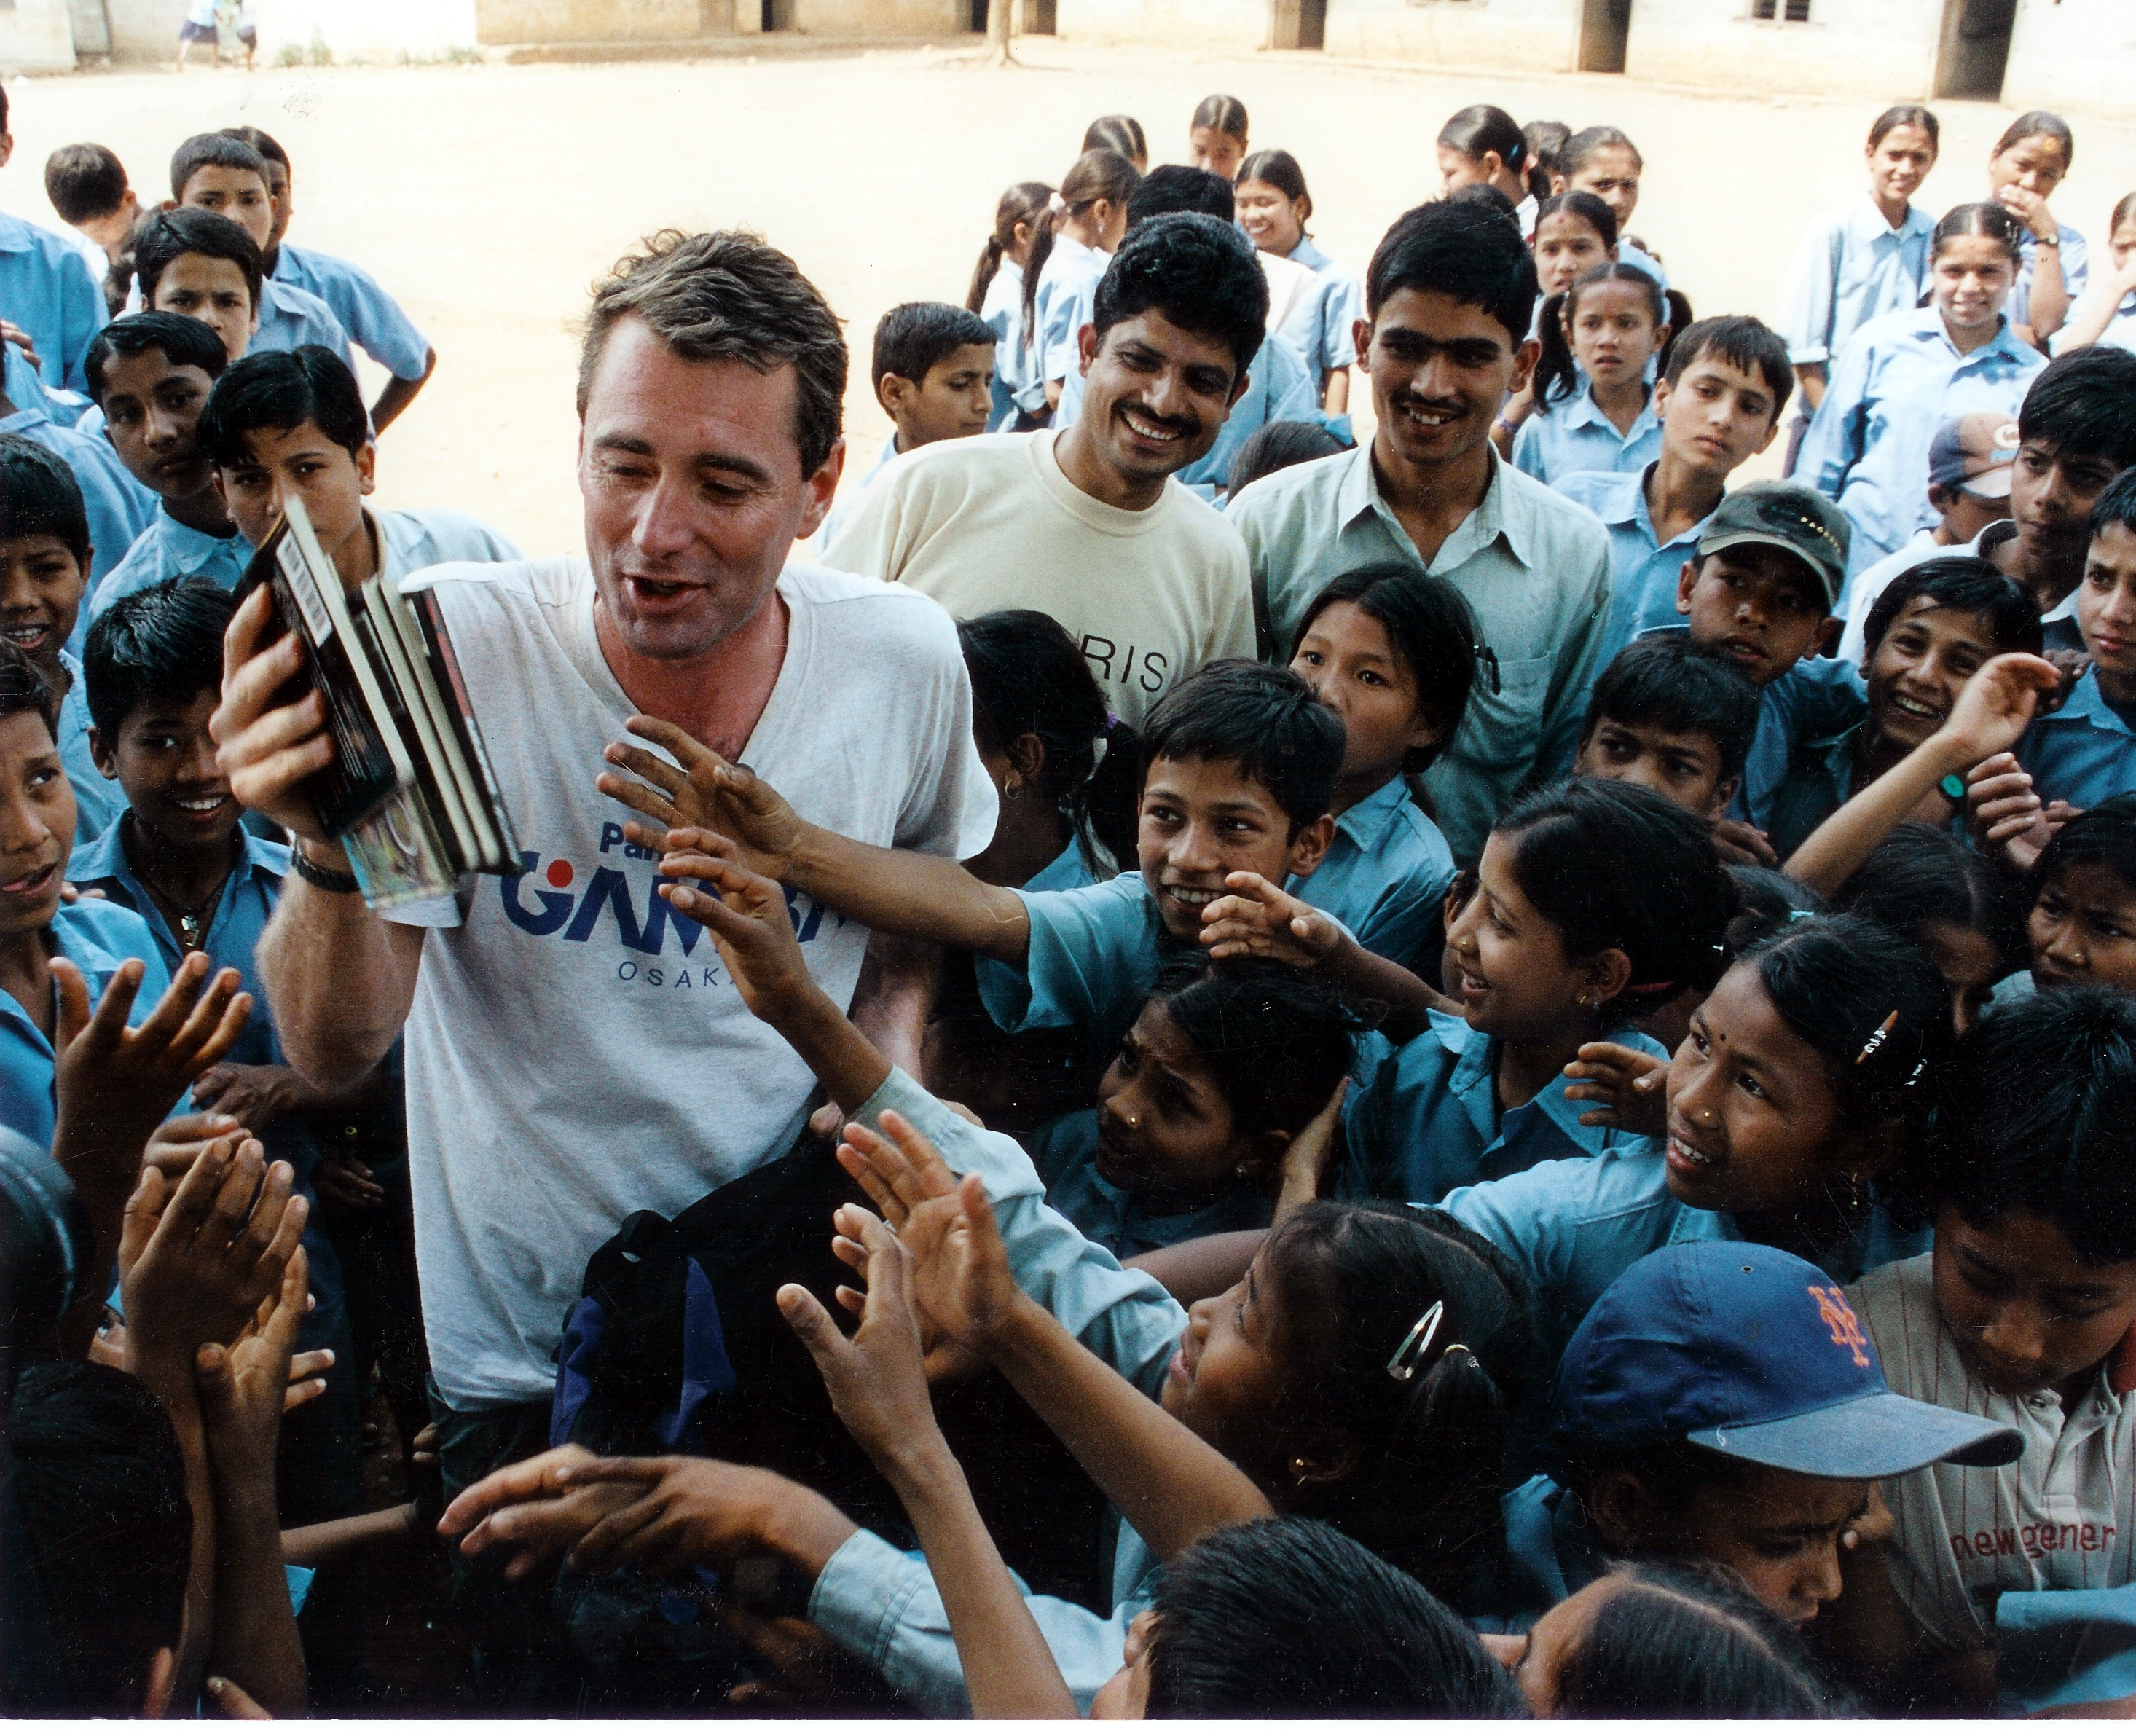 John Wood_distributing books in Nepal.jp